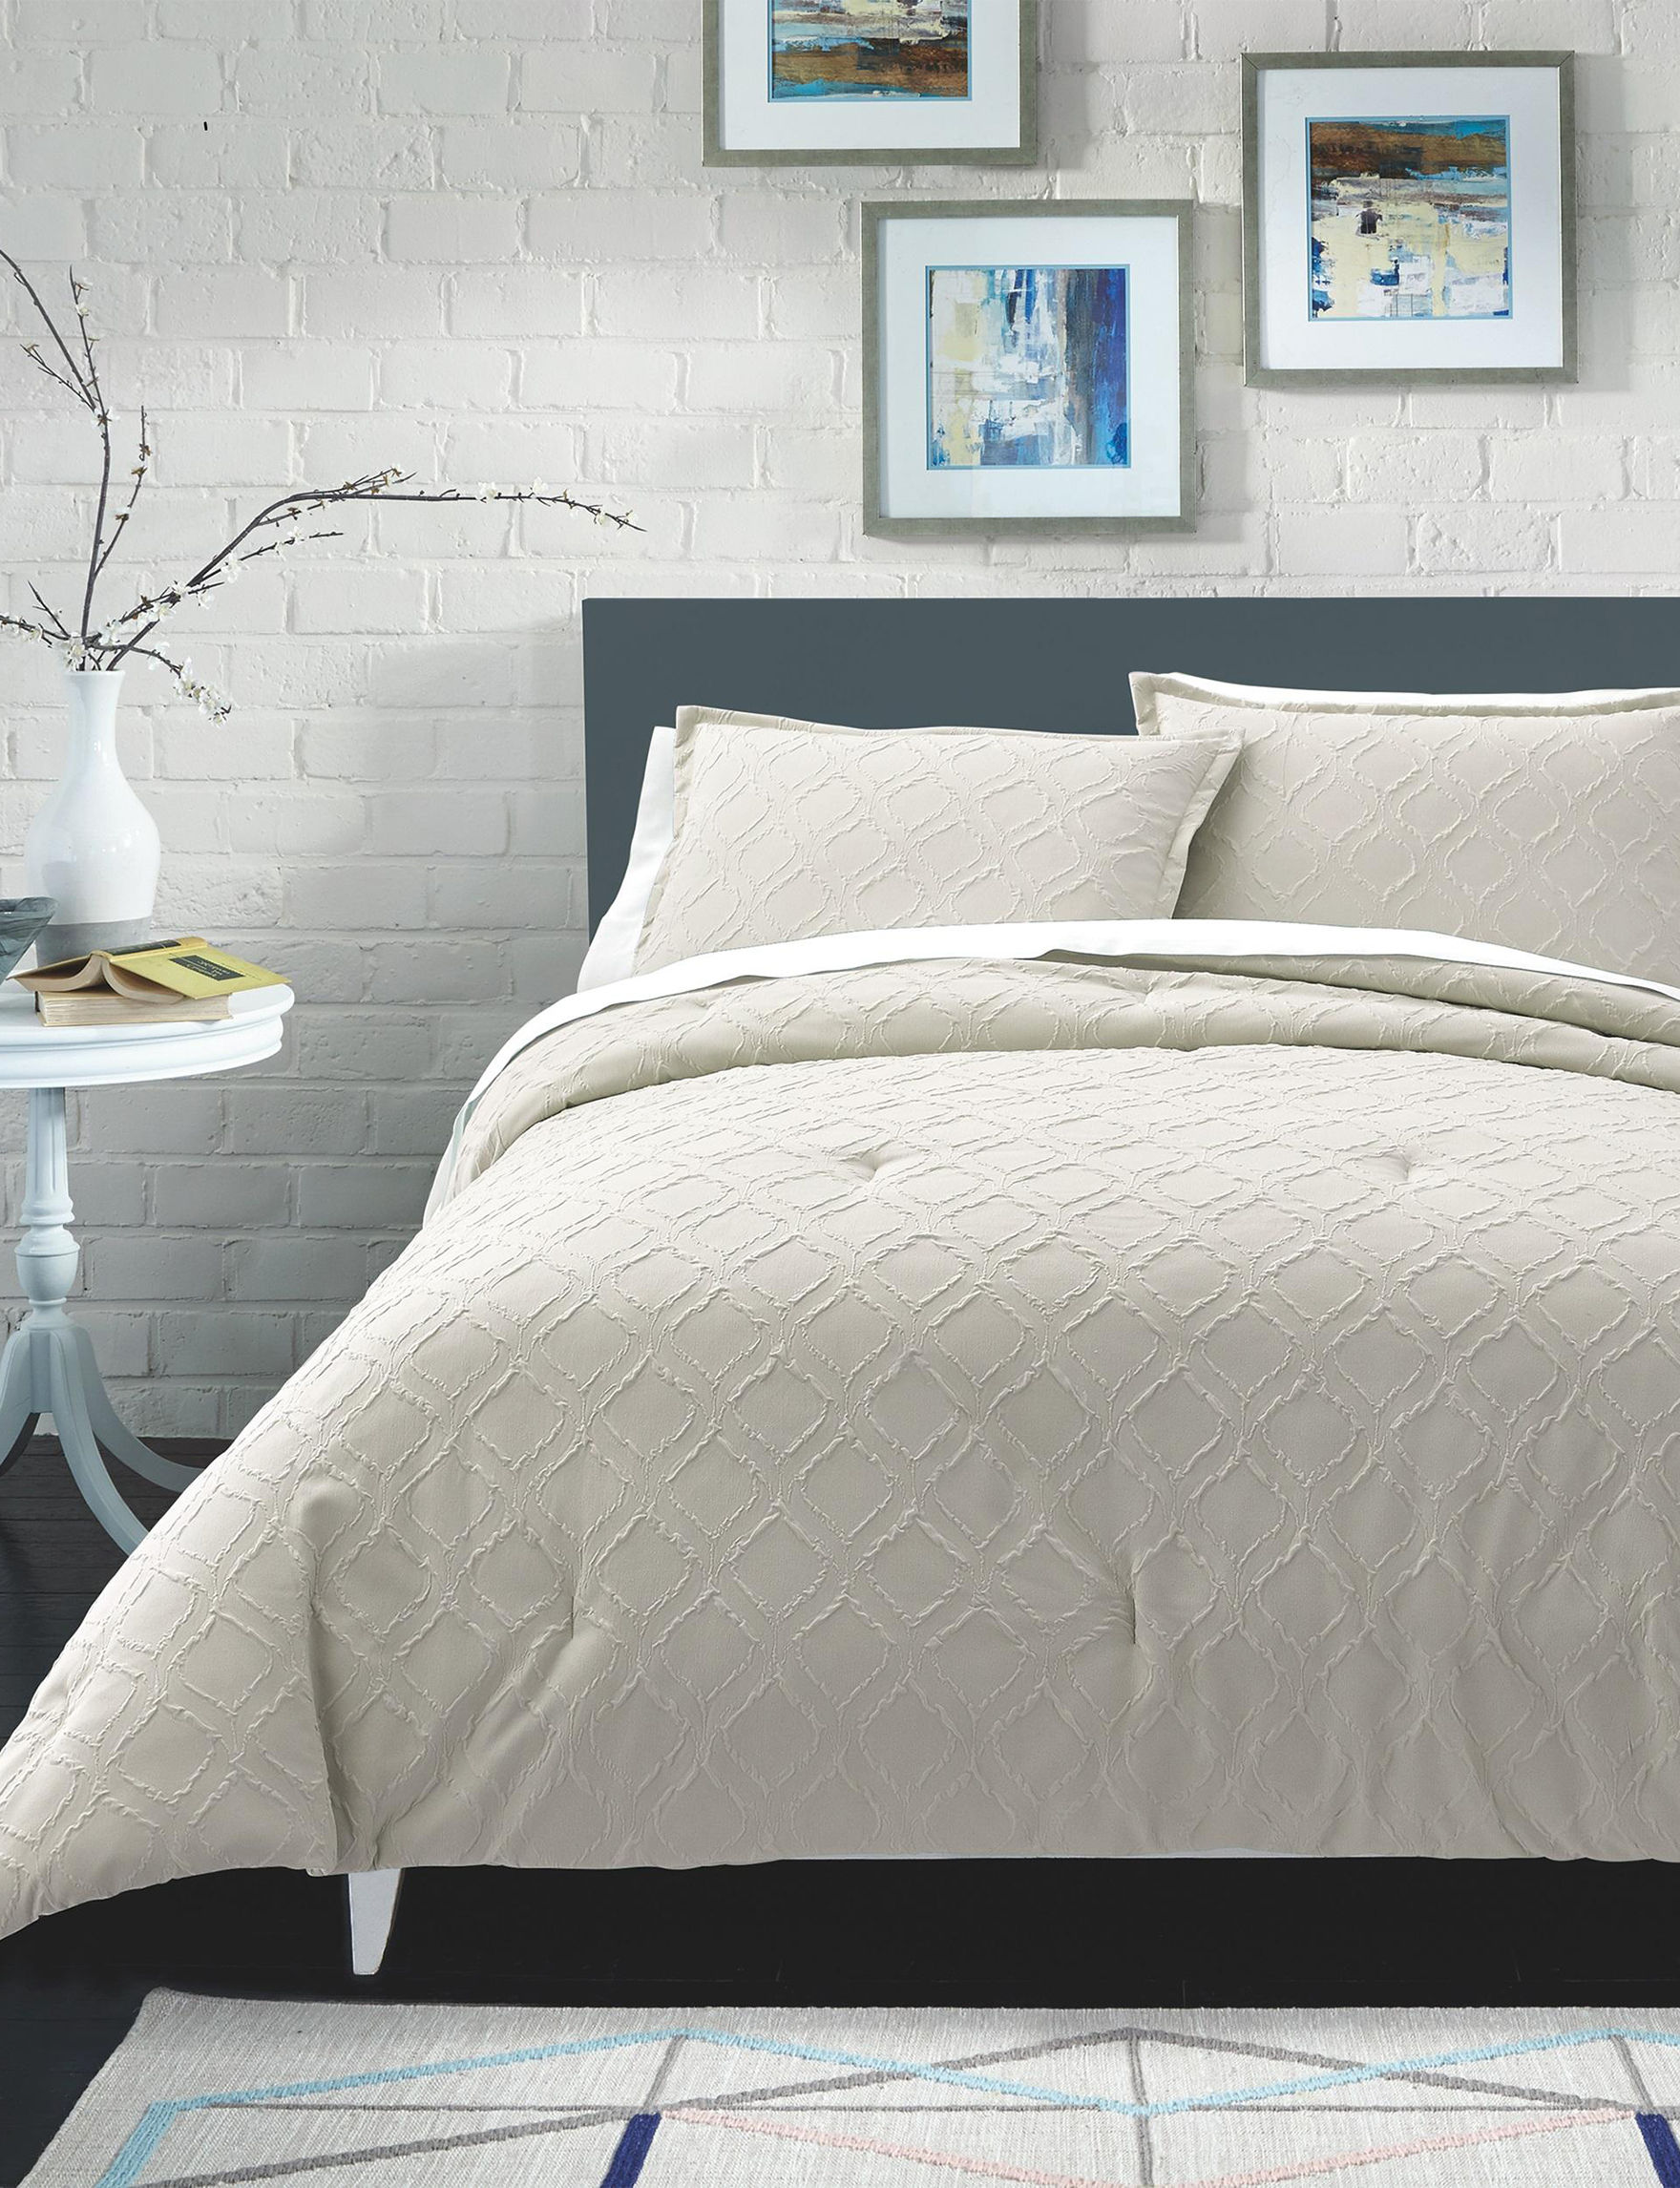 Great Hotels Collection Tan Comforters & Comforter Sets